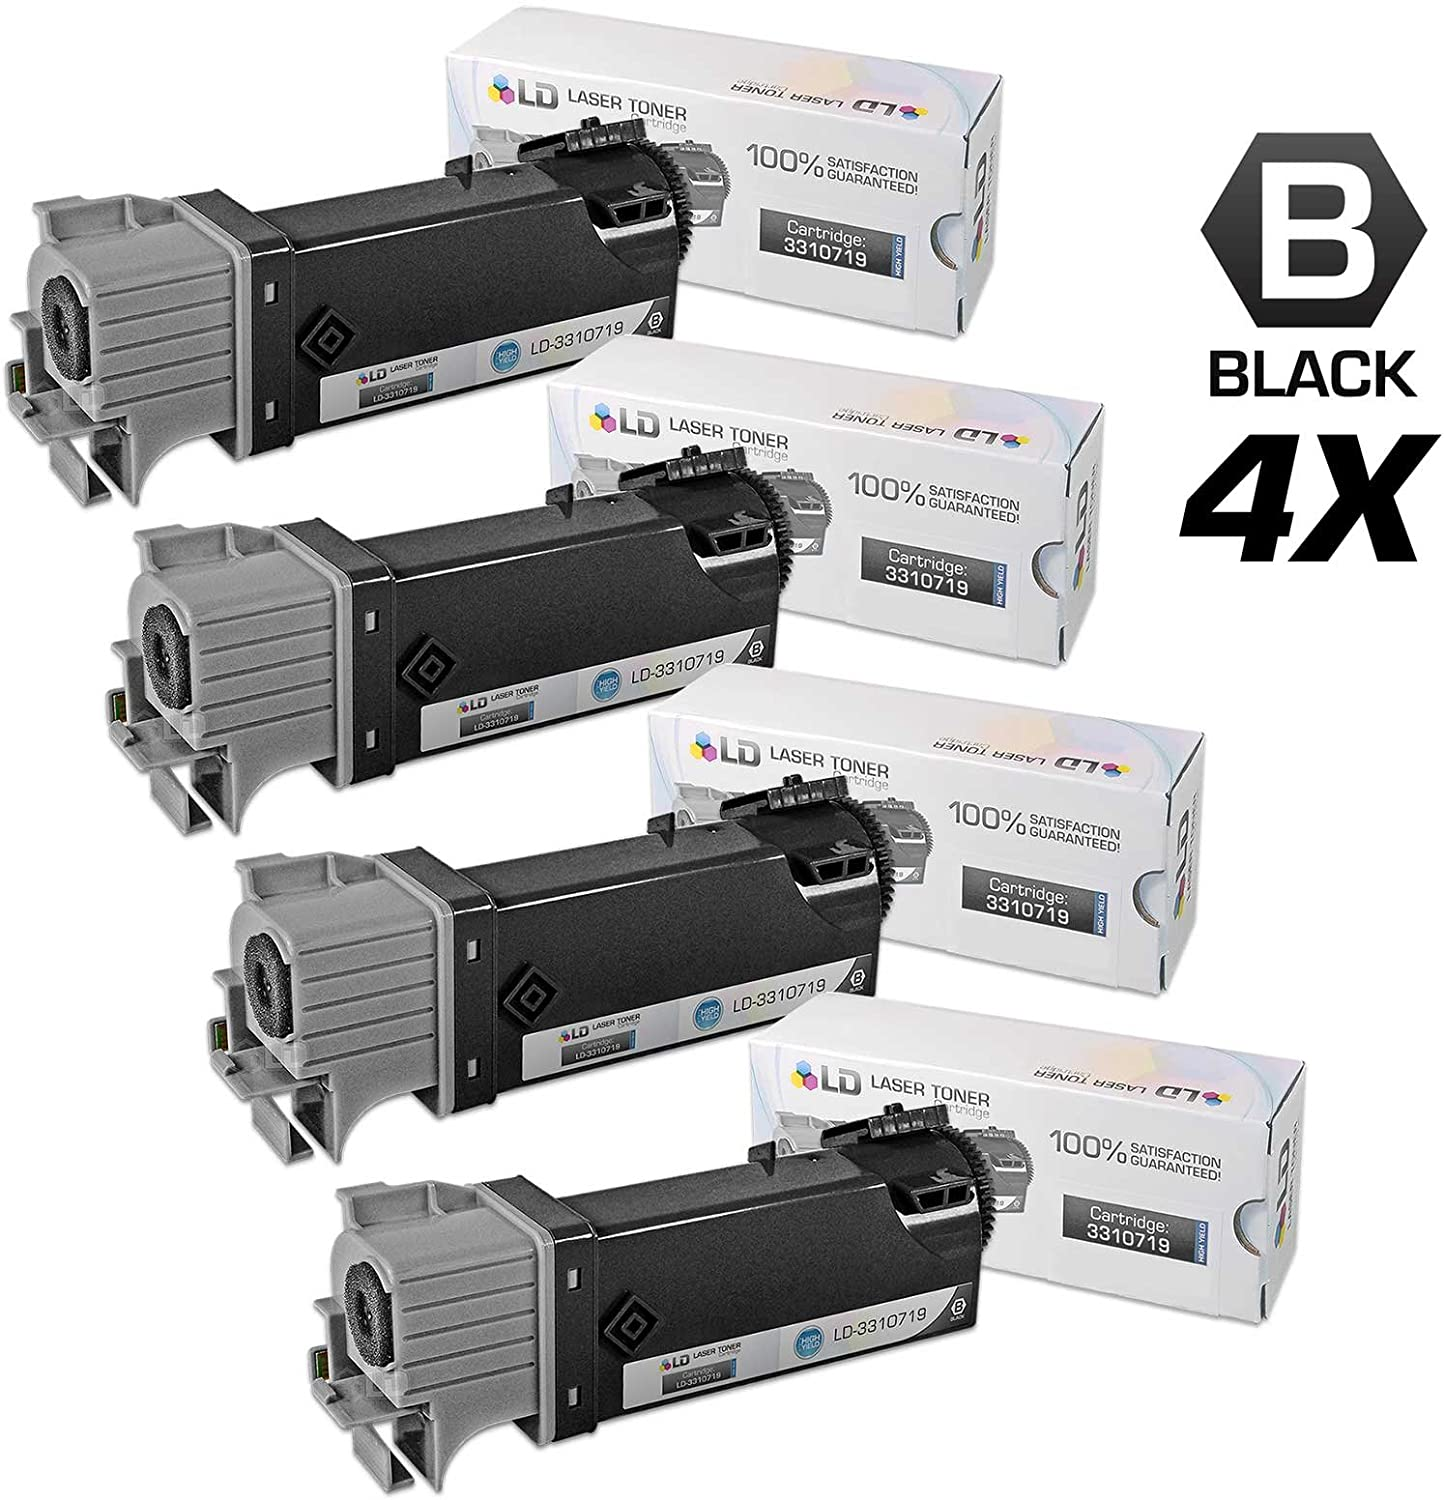 331-0719 for Dell High Yield Black Toner Cartridge MY5TJ 3310719 N51XP 2150 2155